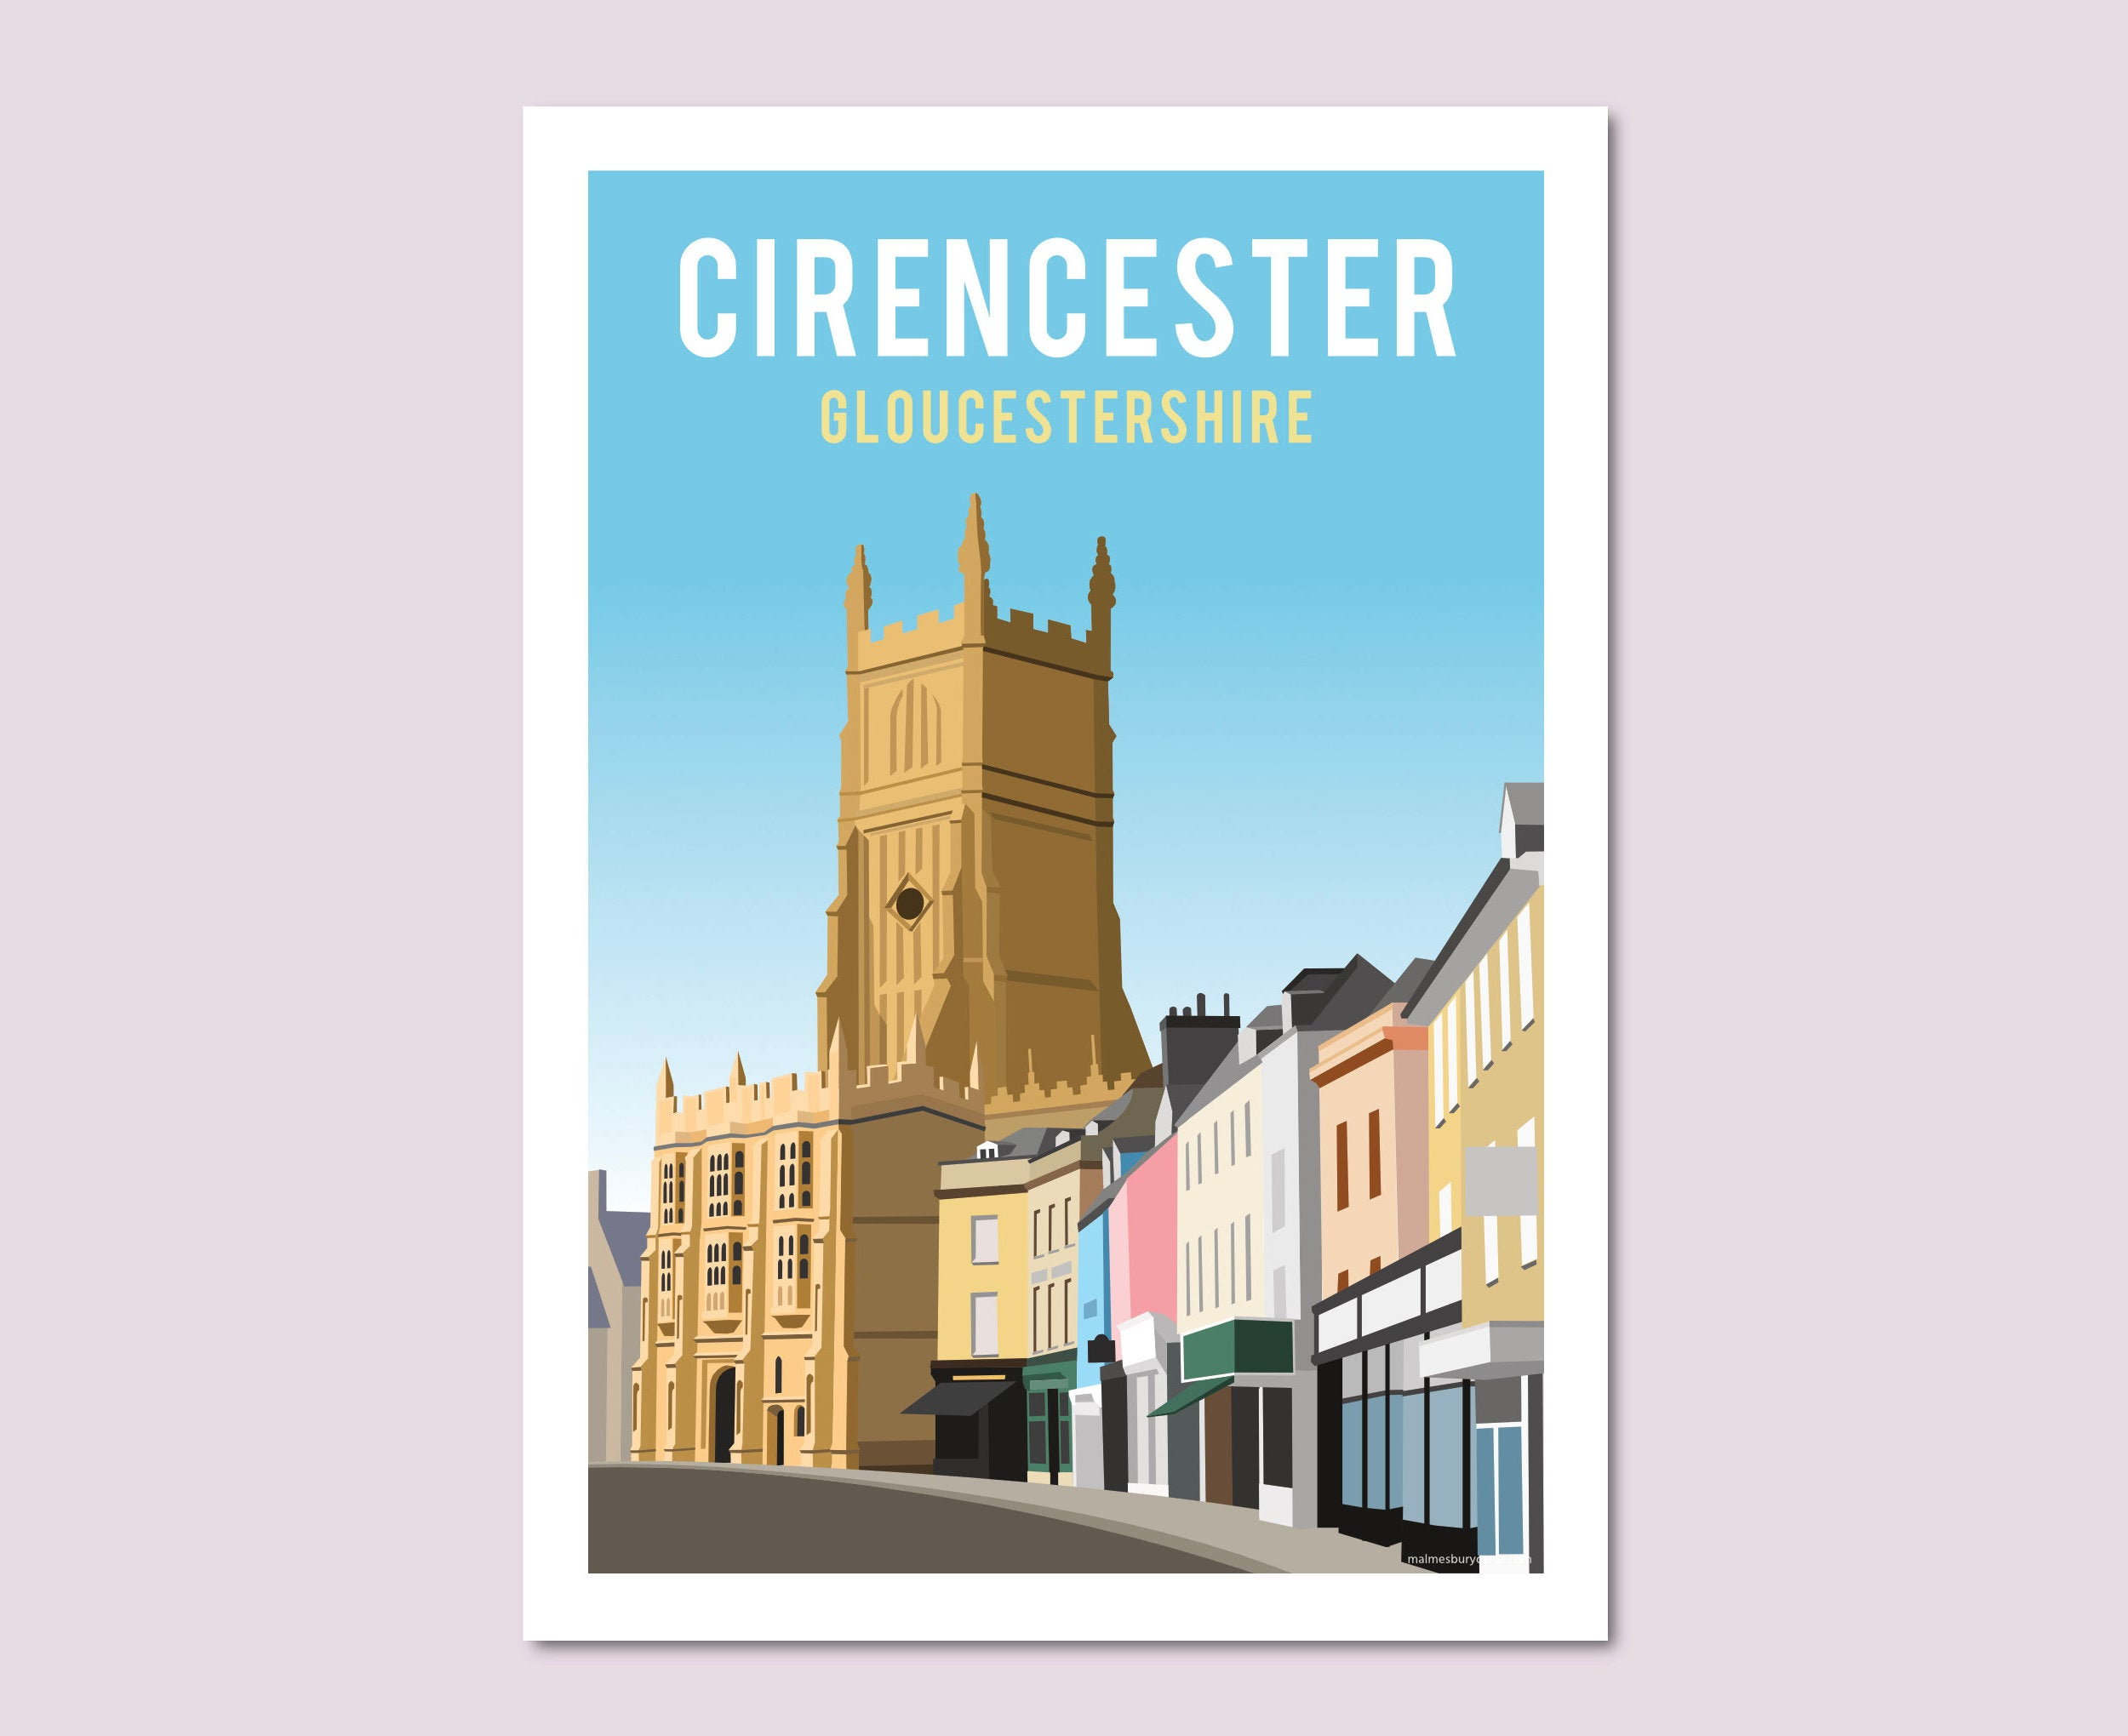 Cirencester Church and Marketplace